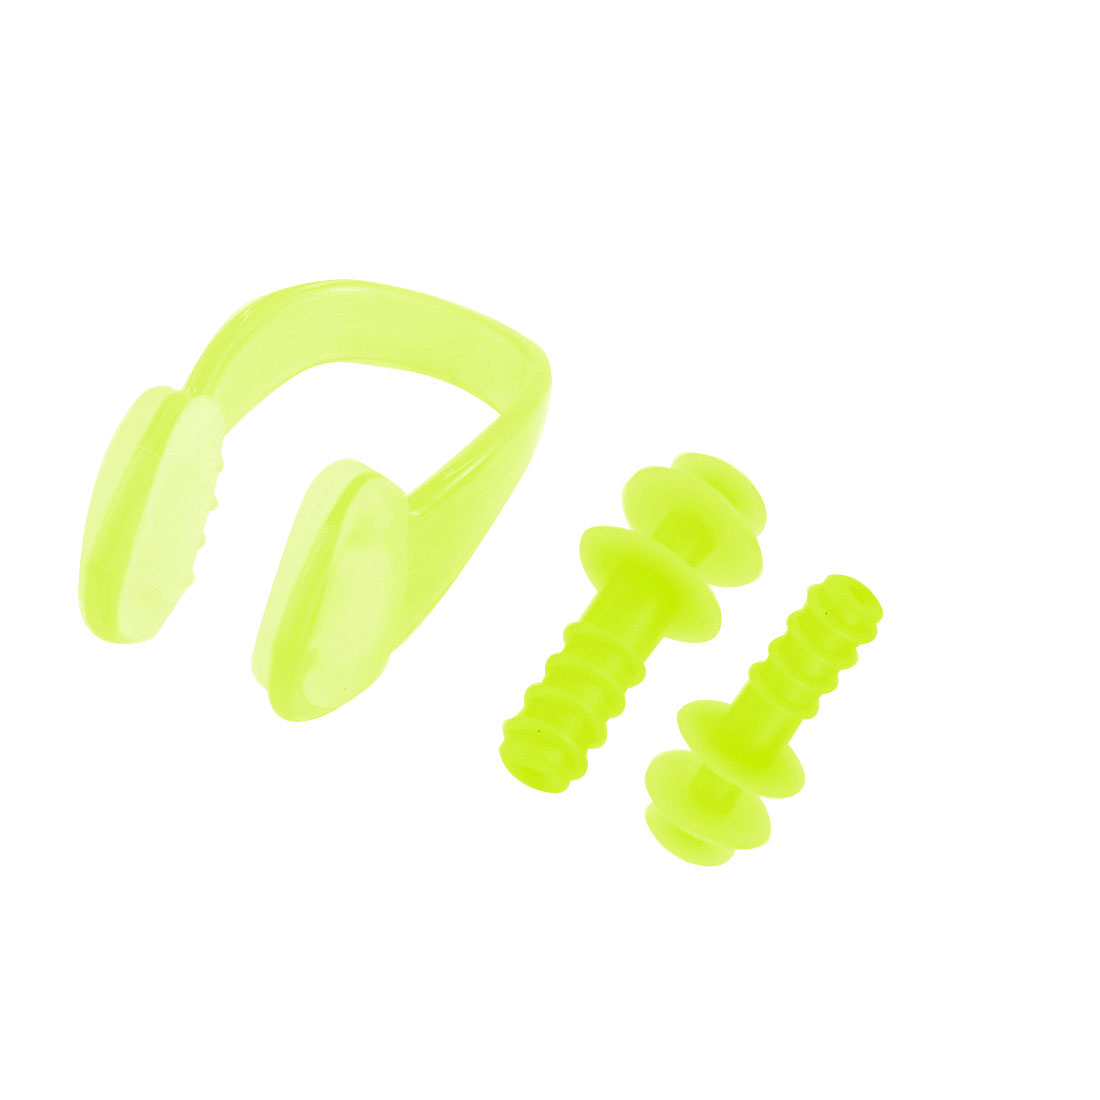 Outdoor Swimming Set Yellow Green Nose Clip Earplugs w Plastic Case